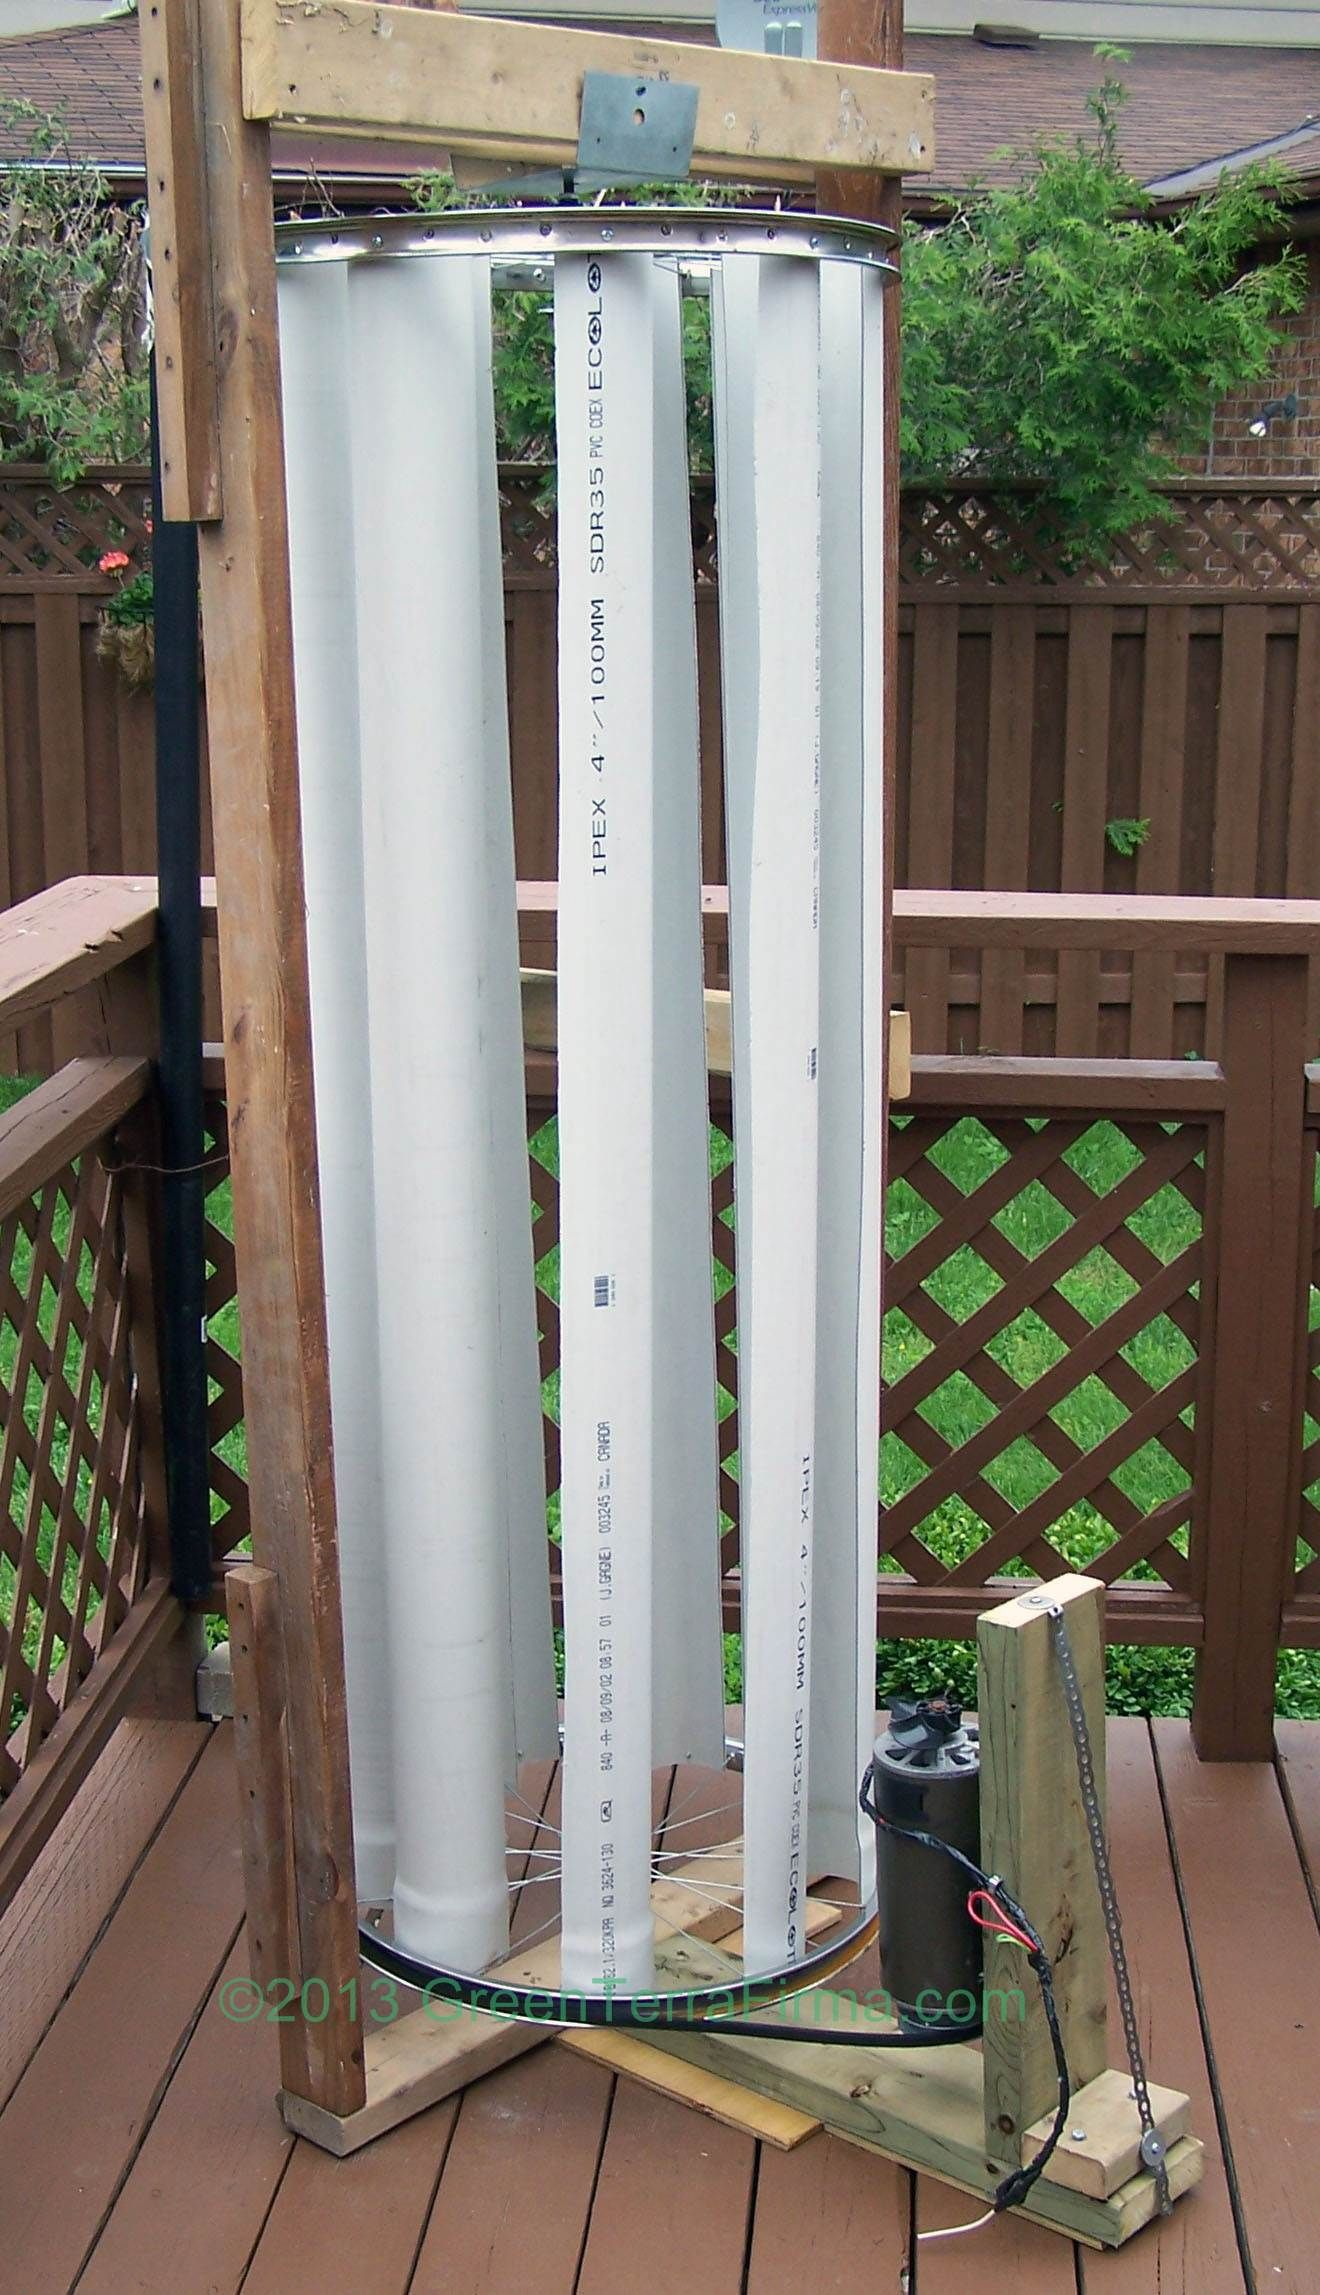 DIY Vertical Axis Wind Turbine fashioned from pvc pipe discarded